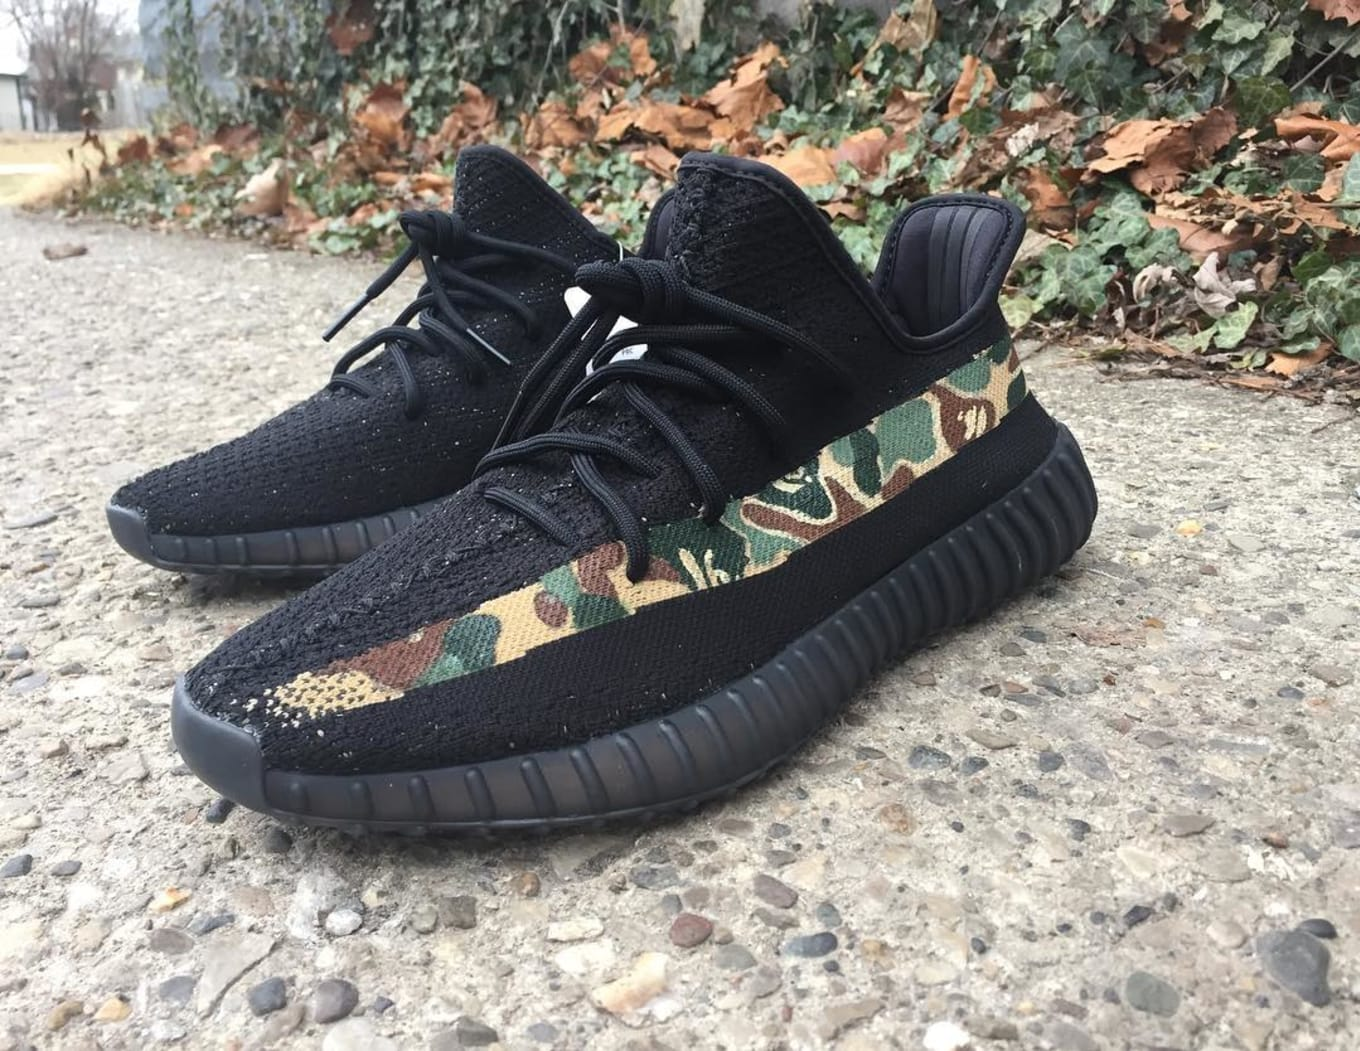 The Best Adidas Yeezy 350 Boost V2 Customs | Sole Collector